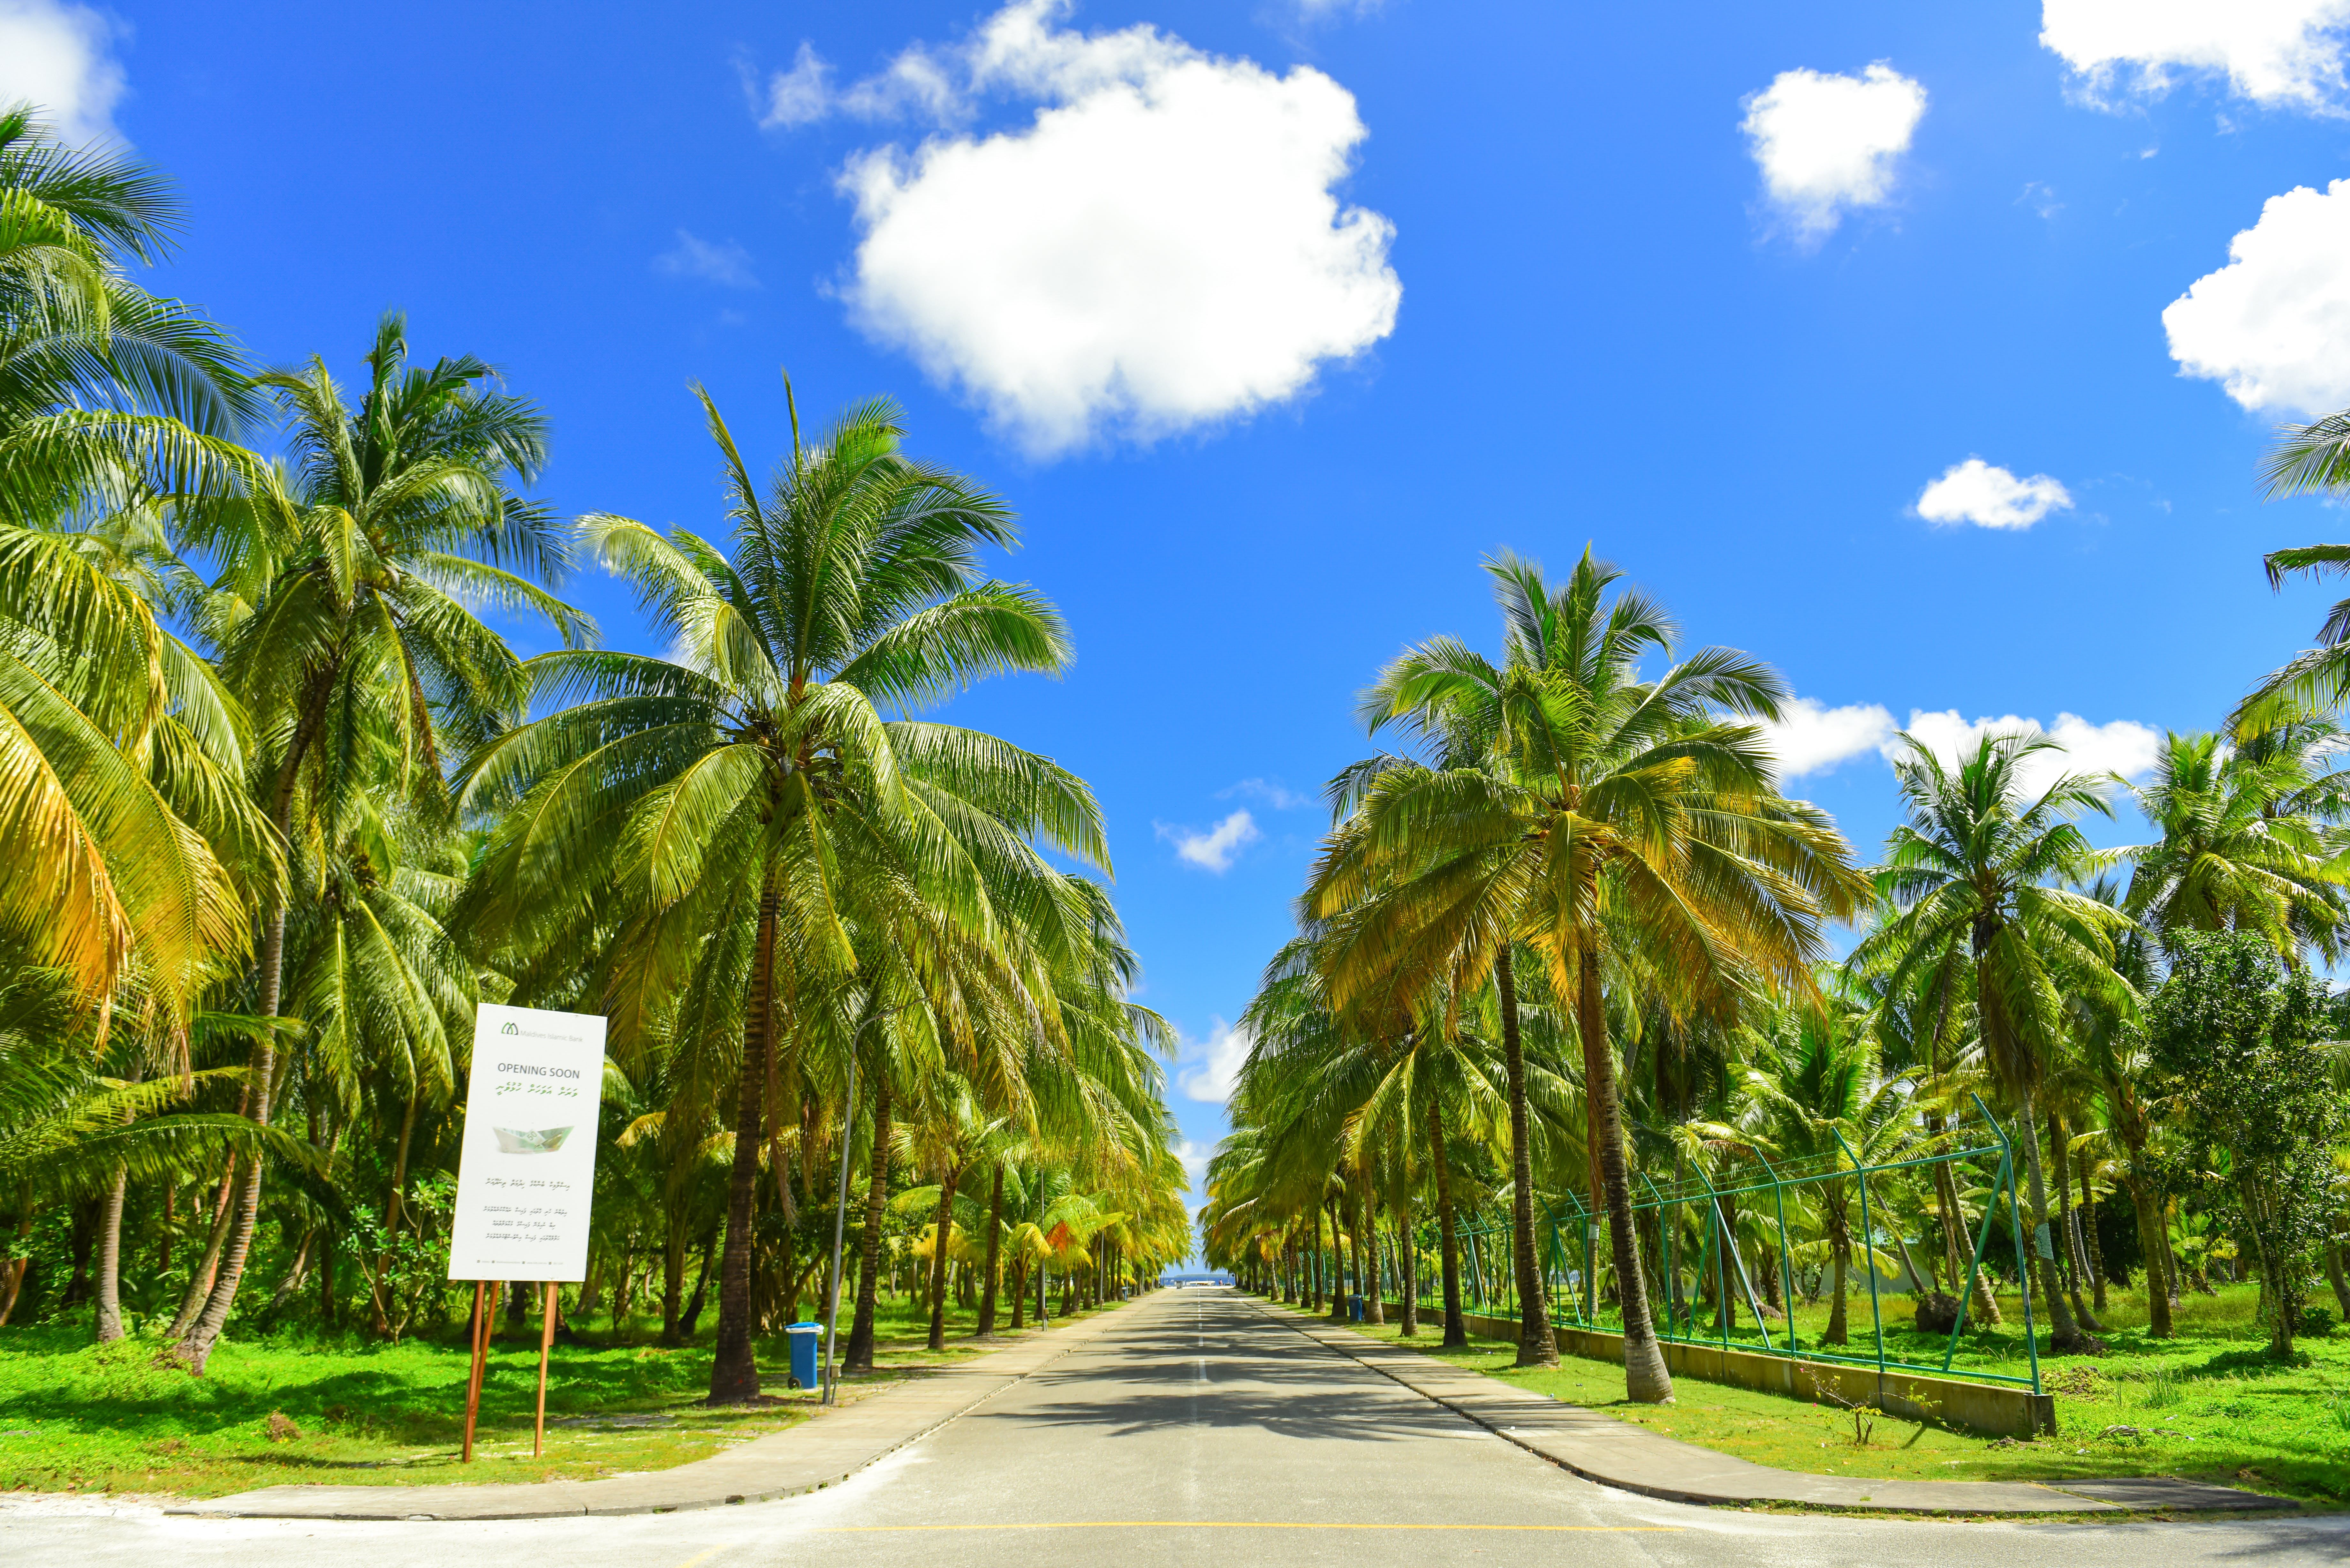 Gray Concrete Road Between Palm Trees